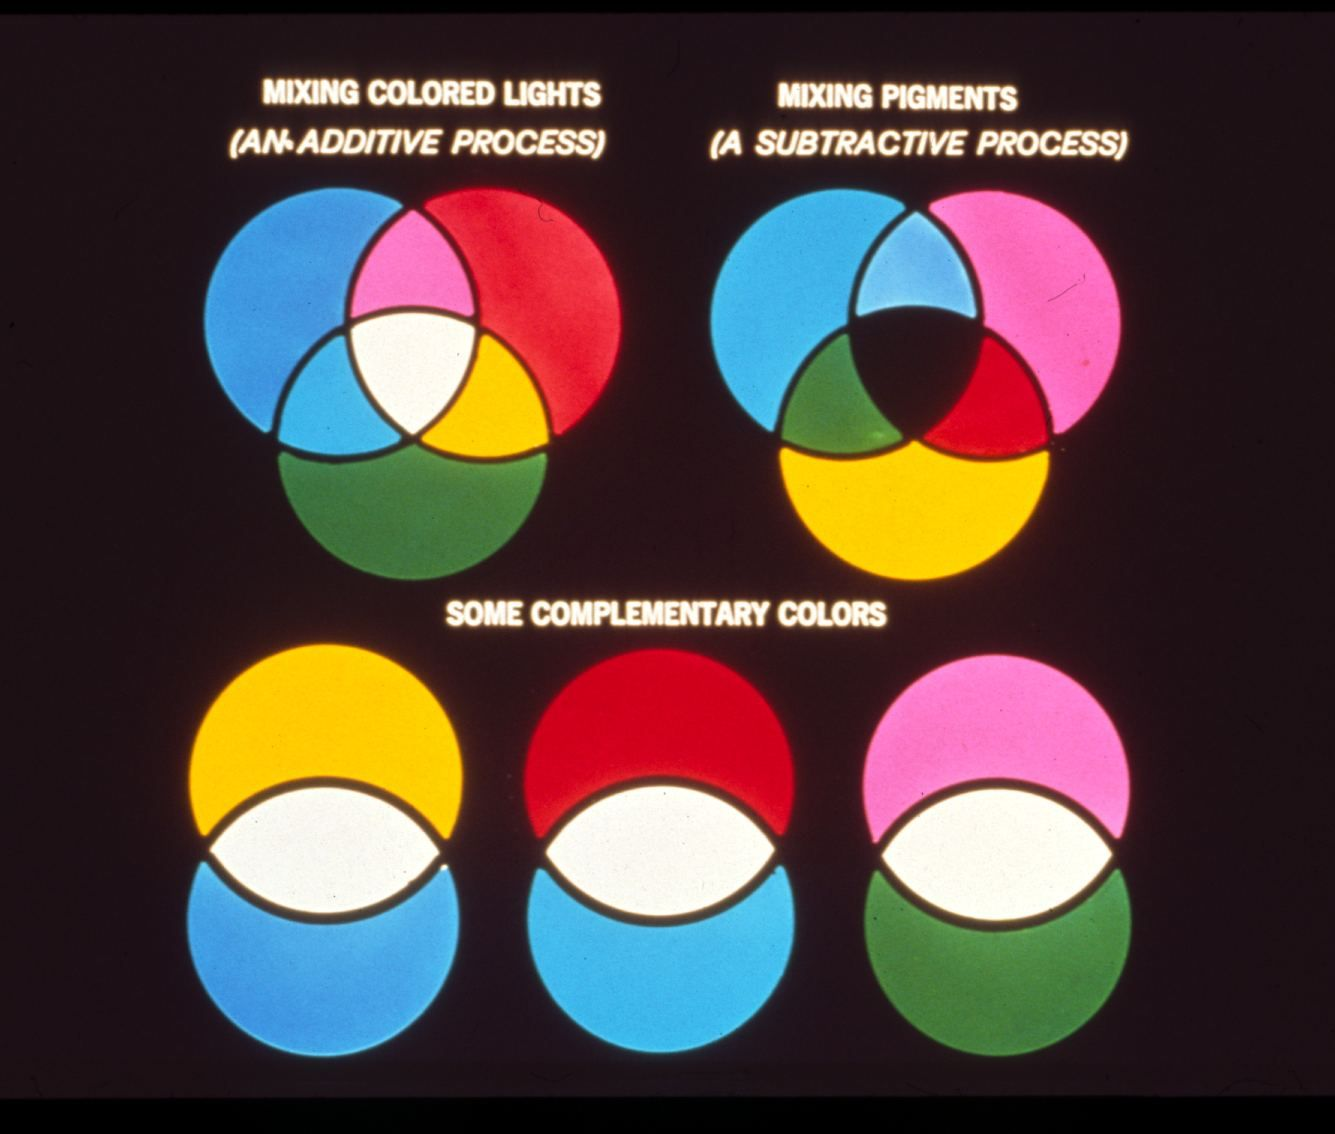 Mixing Lights Additive Color Theory Amp Mixing Pigments